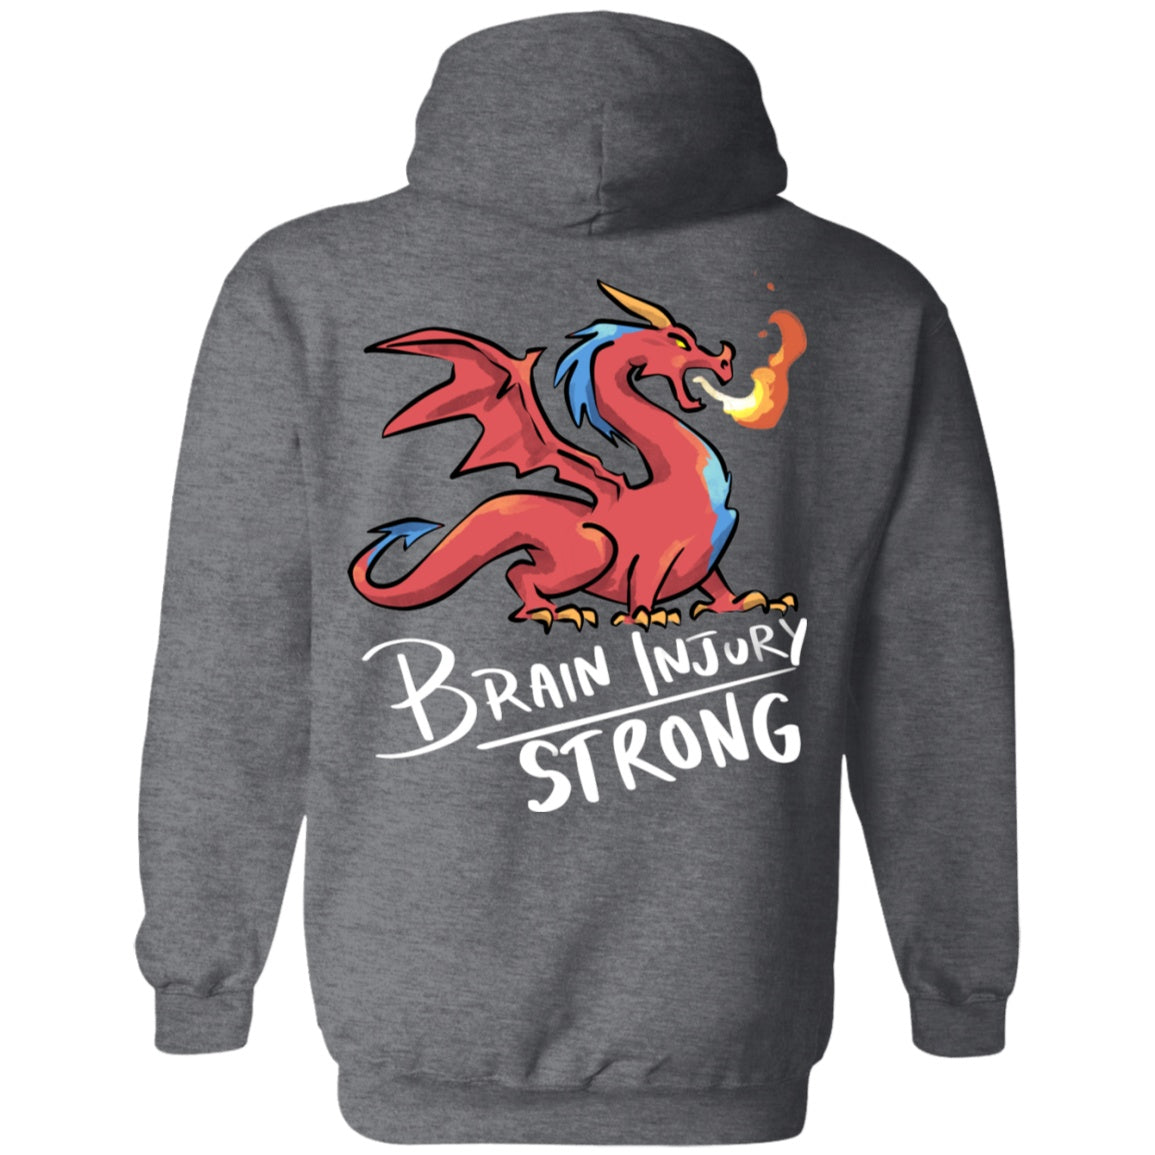 Brain Injury Strong Dragon Pullover Hoodie 8 oz. - The Unchargeables